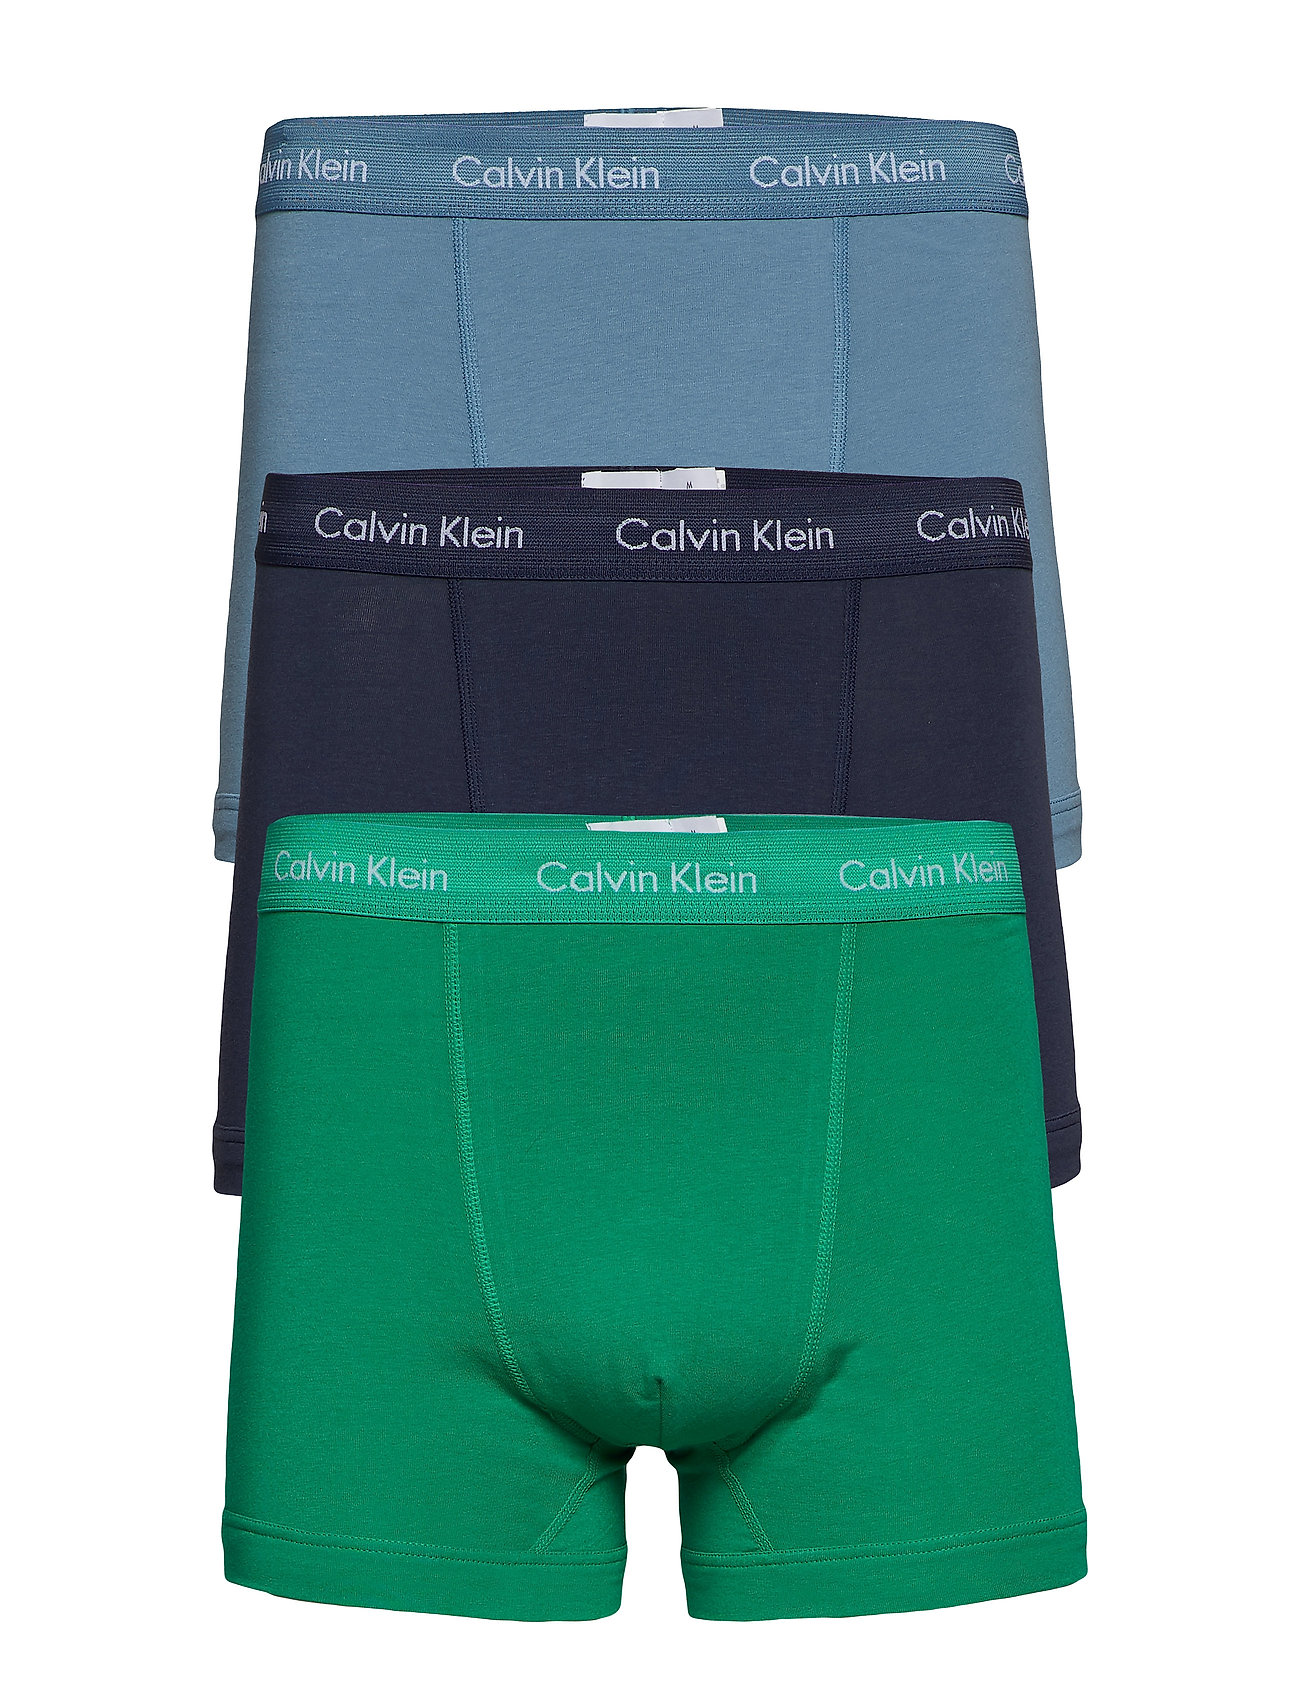 Calvin Klein COTTON STRETCH 3PK TRUNK